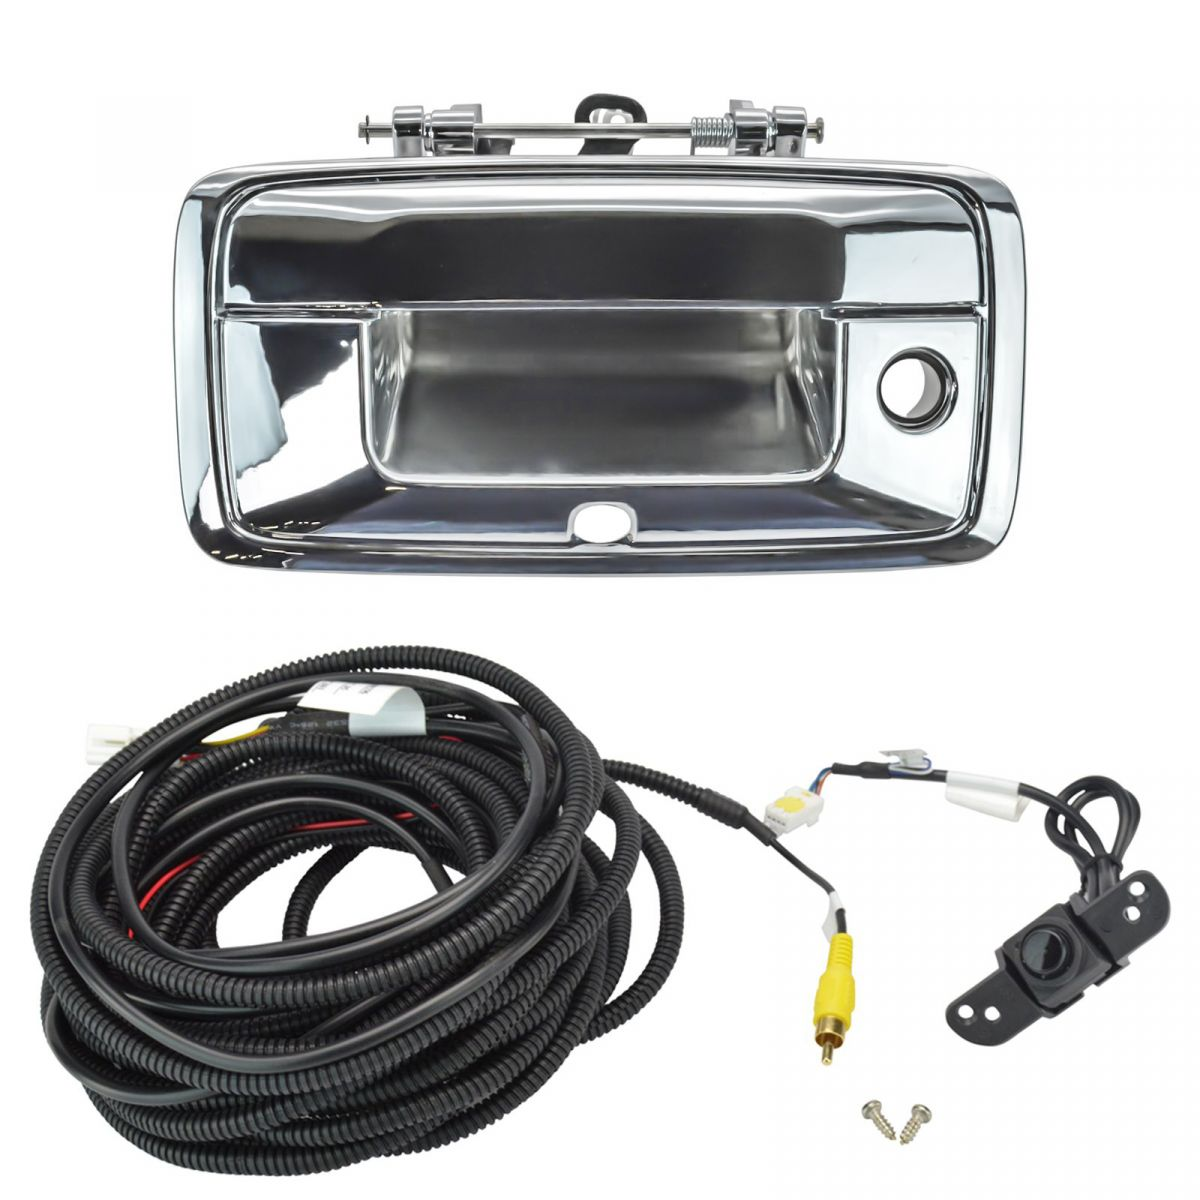 Tailgate Handle Chrome with Camera and 26 feet cable